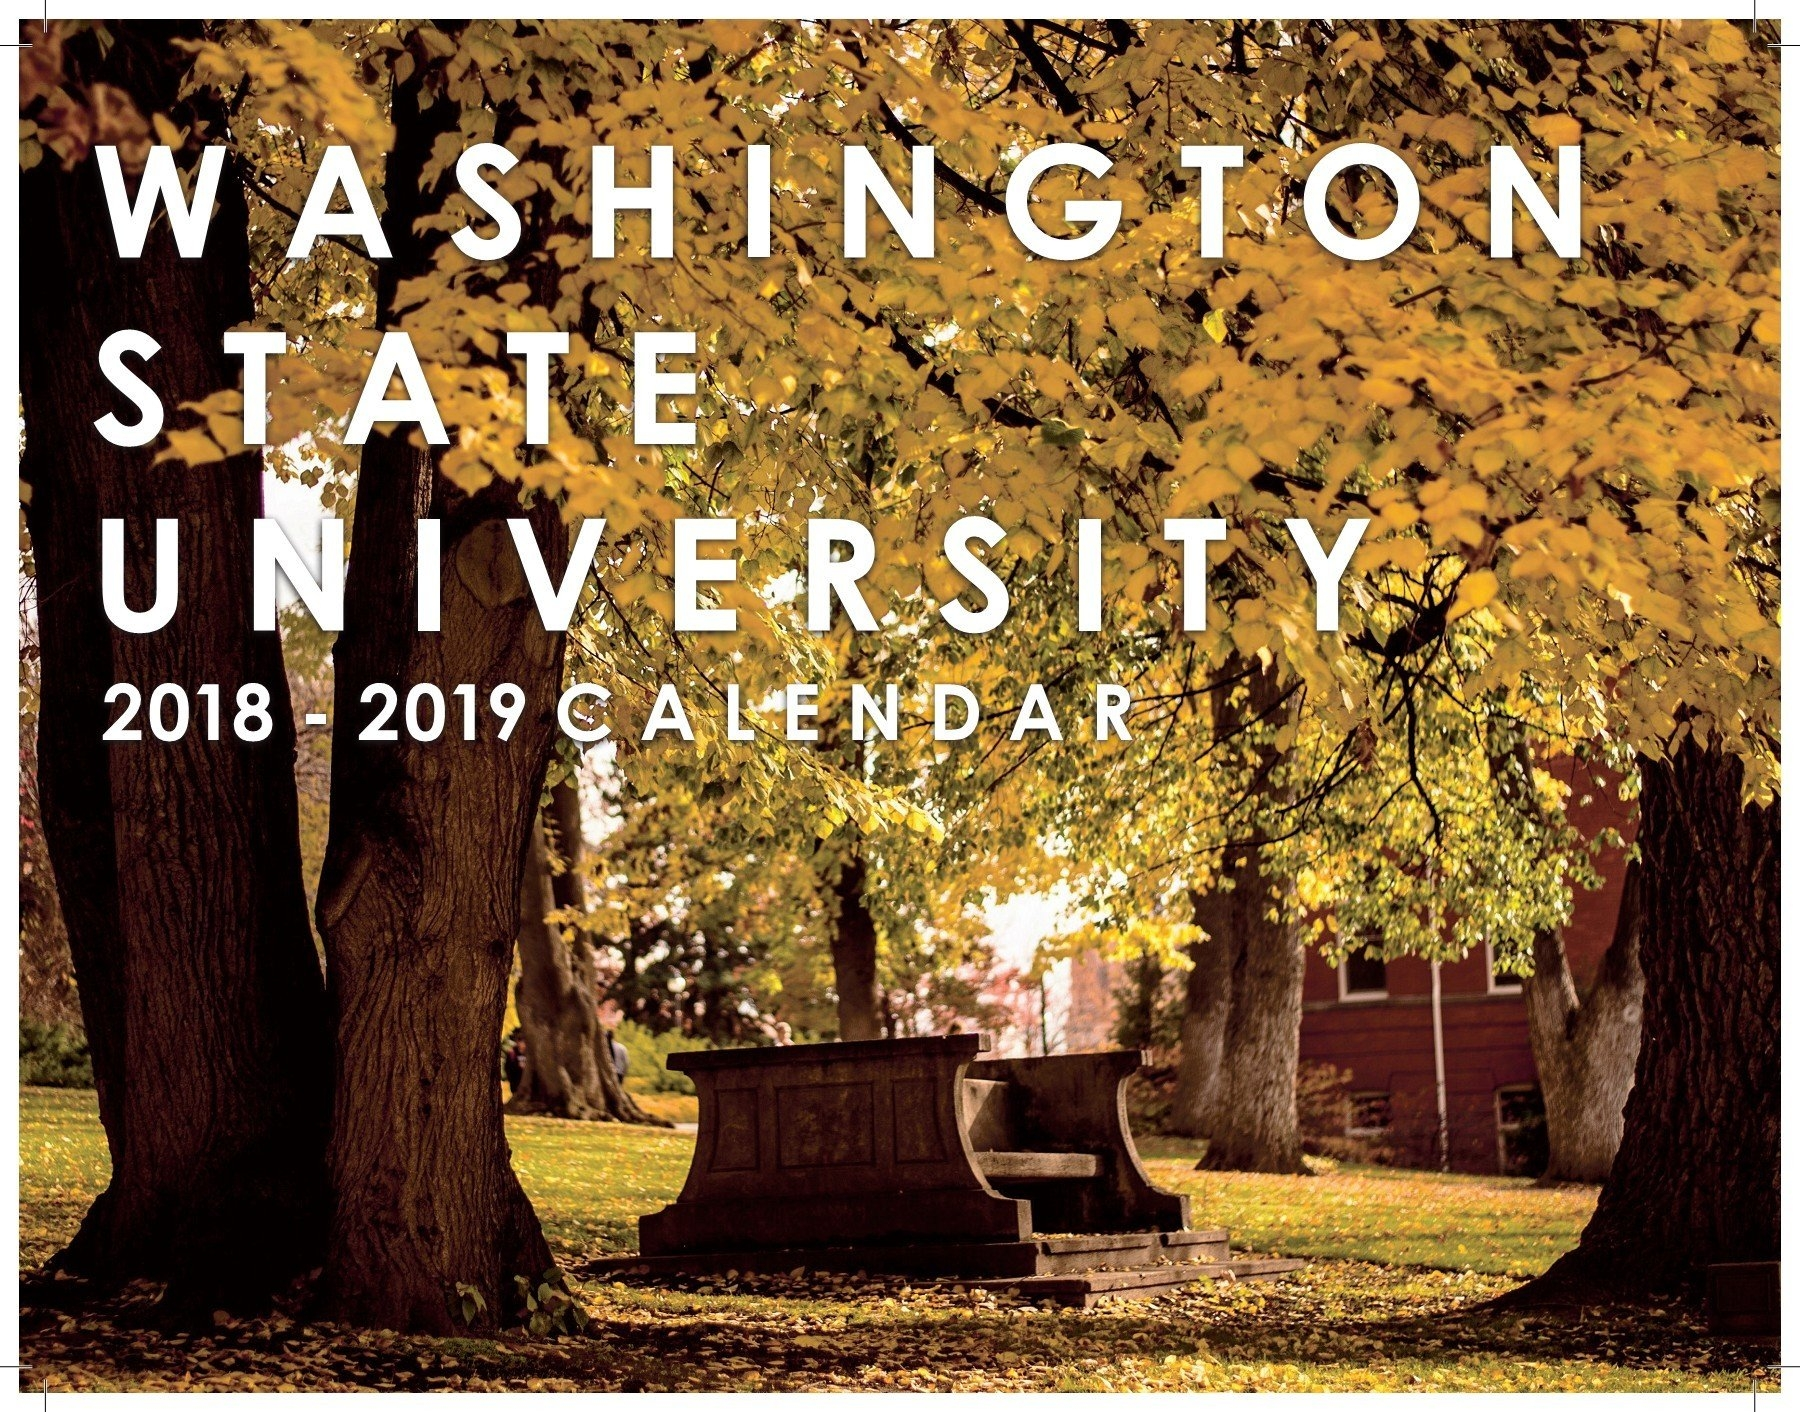 2018-19 Wsu Academic Calendar Pages 1 - 28 - Text Version | Fliphtml5 Uc Berkeley Academic Calendar 2019-20